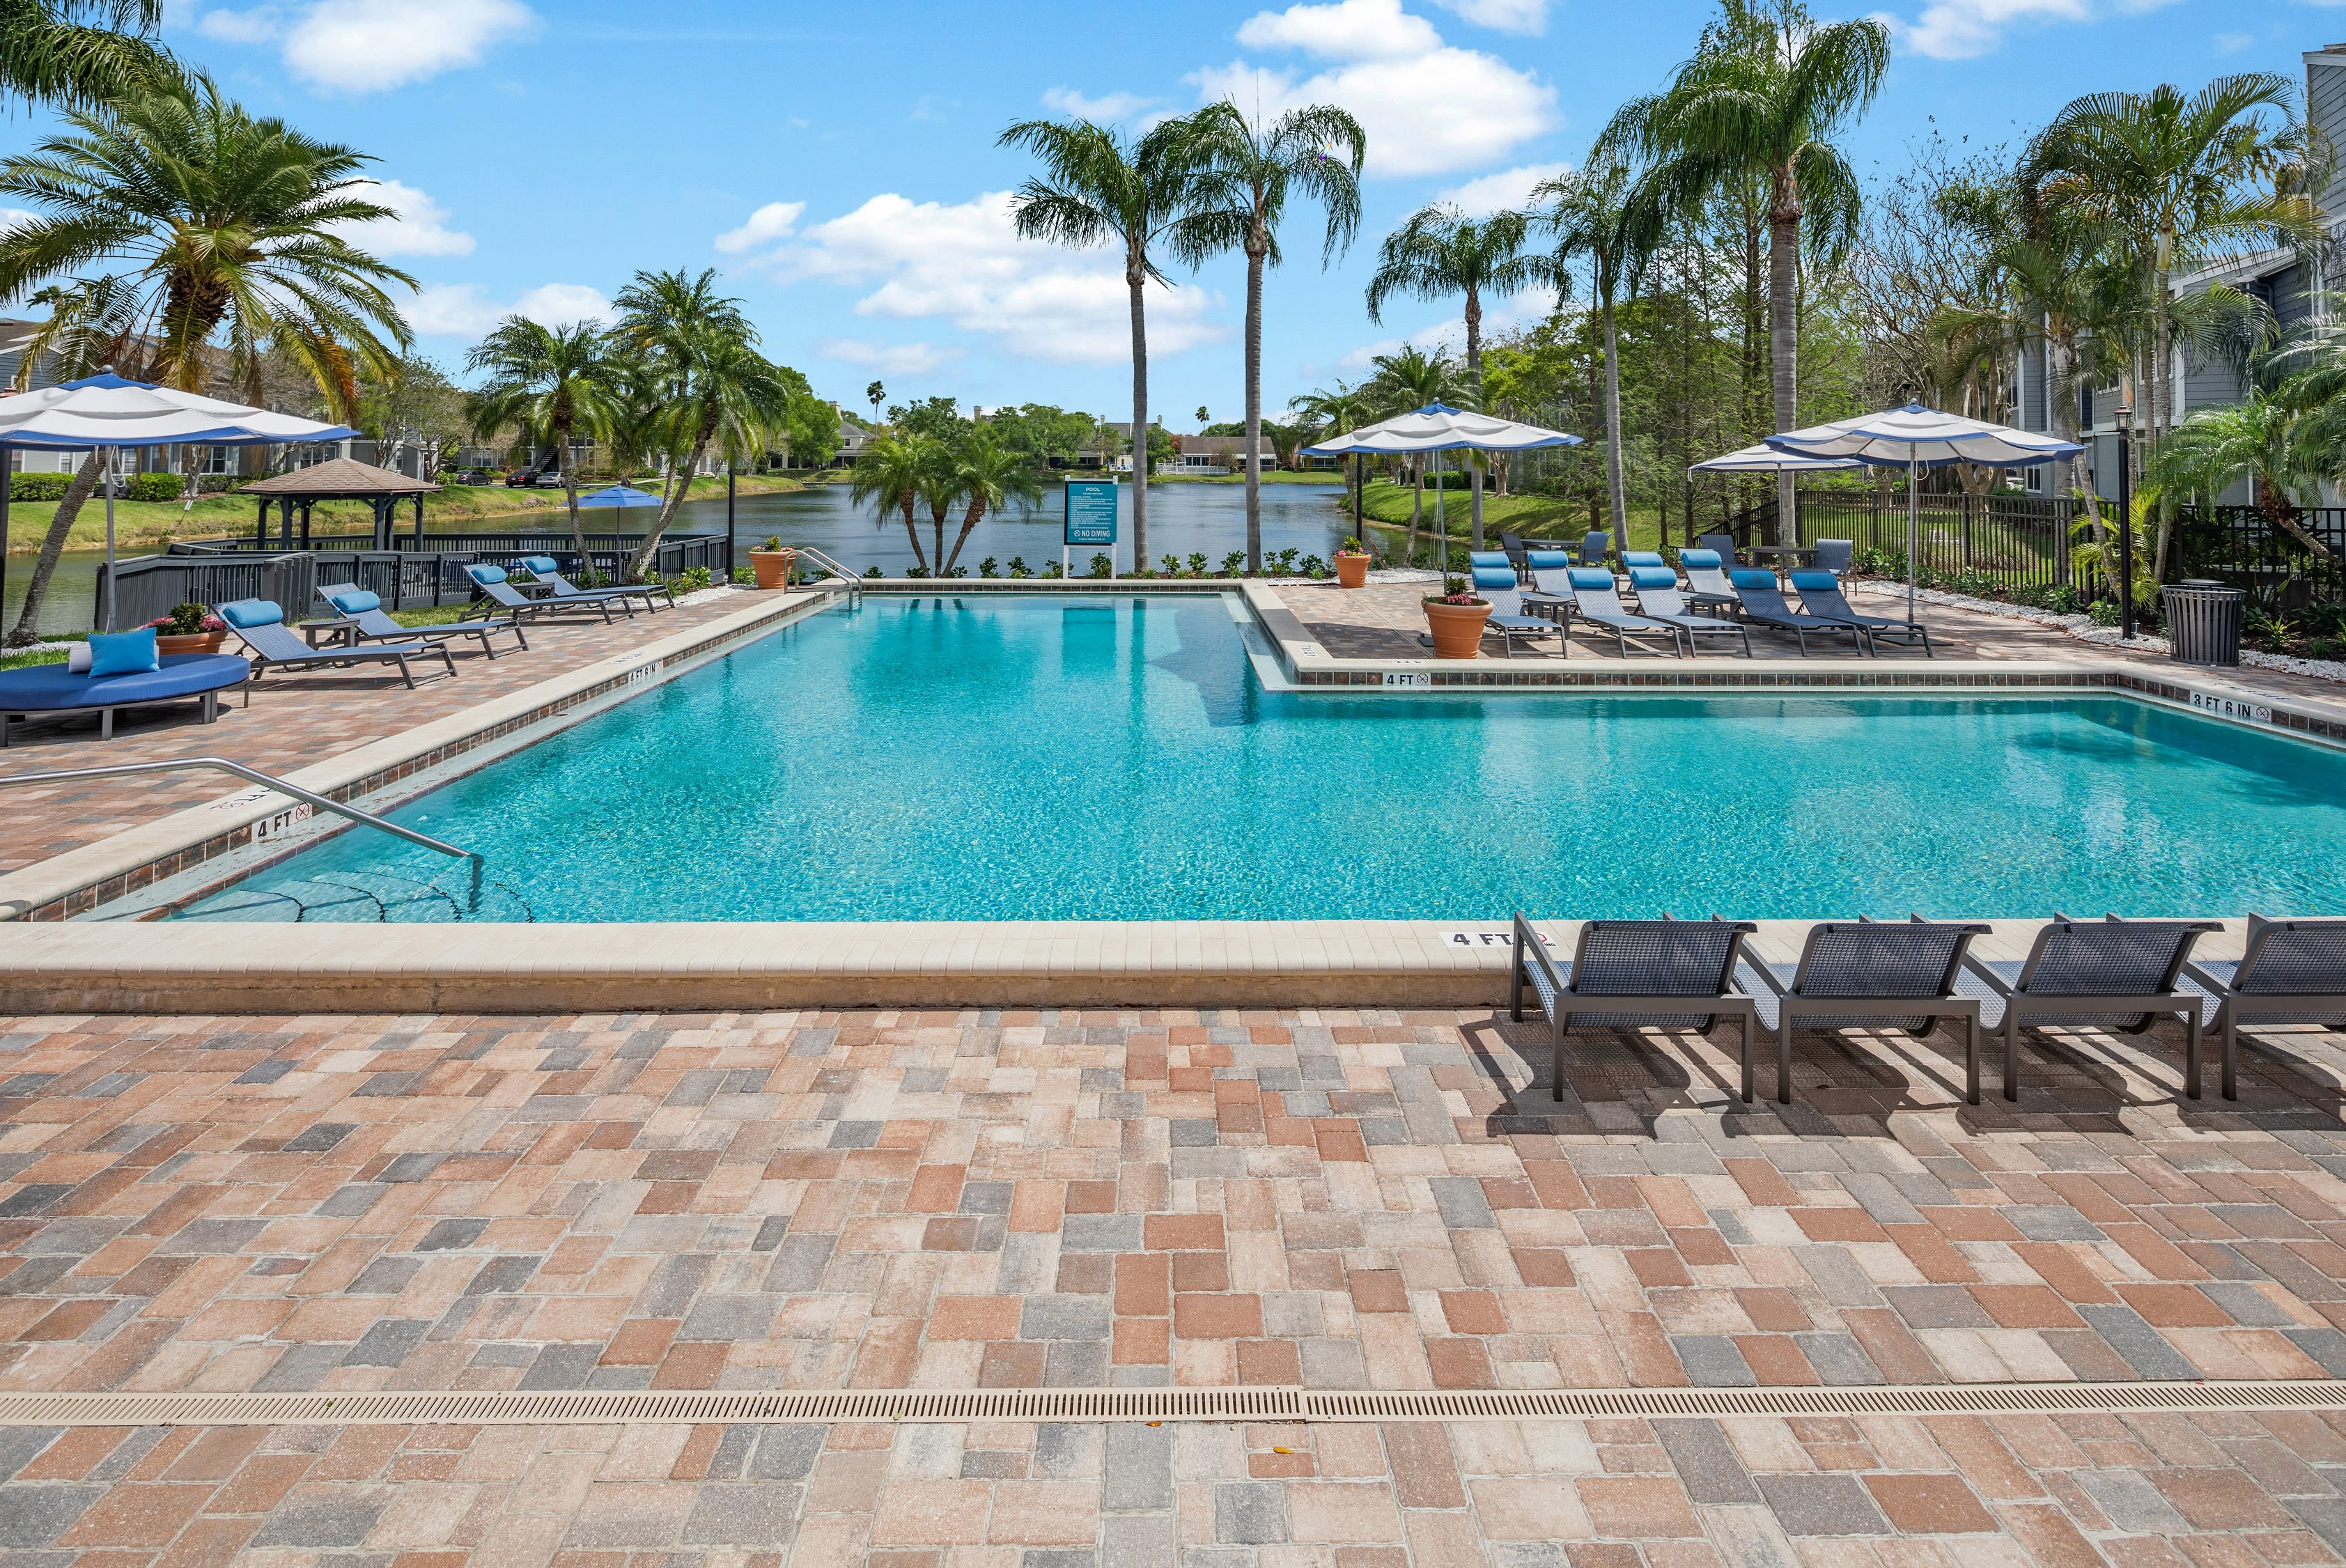 A large pool at Fairways at Feather Sound in Clearwater, FL